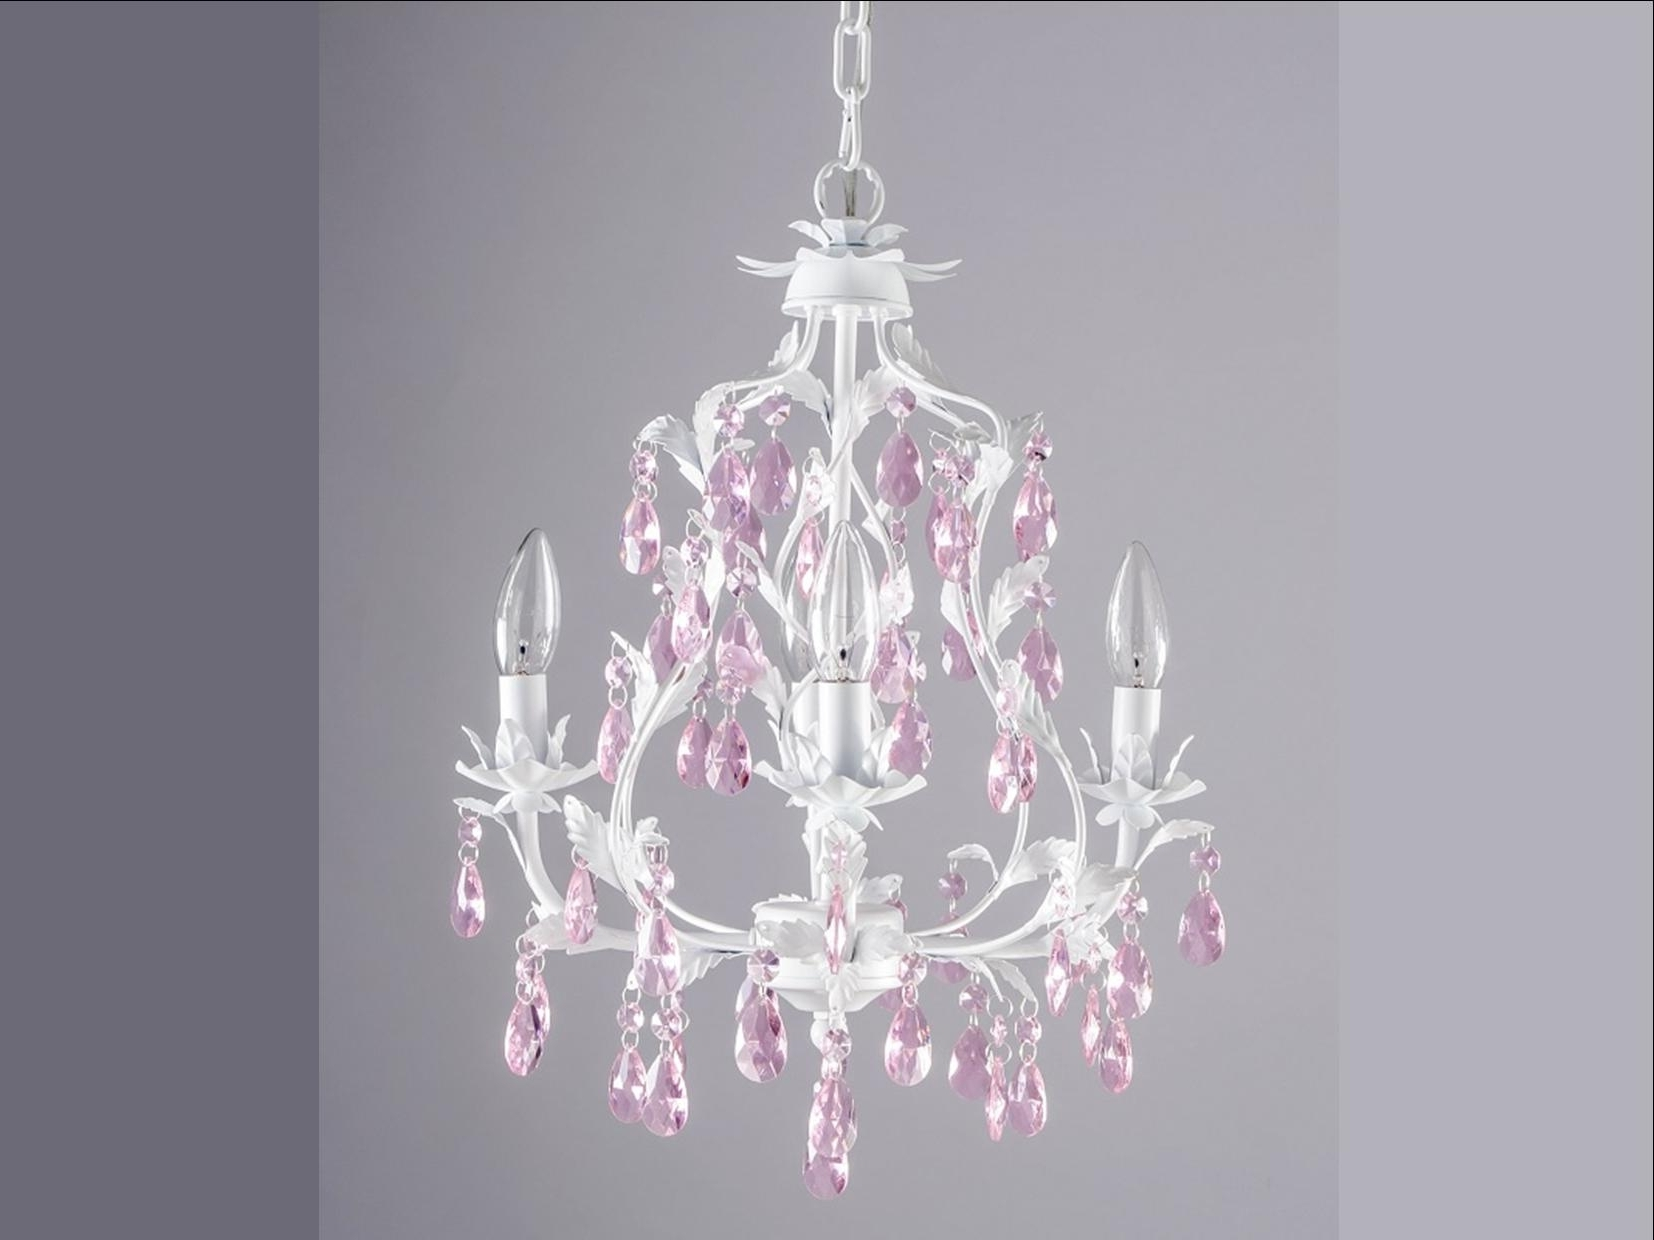 Current Childrens Pendant Lamp Shades Plug In Chandeliers For Kids Pink Throughout Fuschia Chandelier (View 2 of 20)